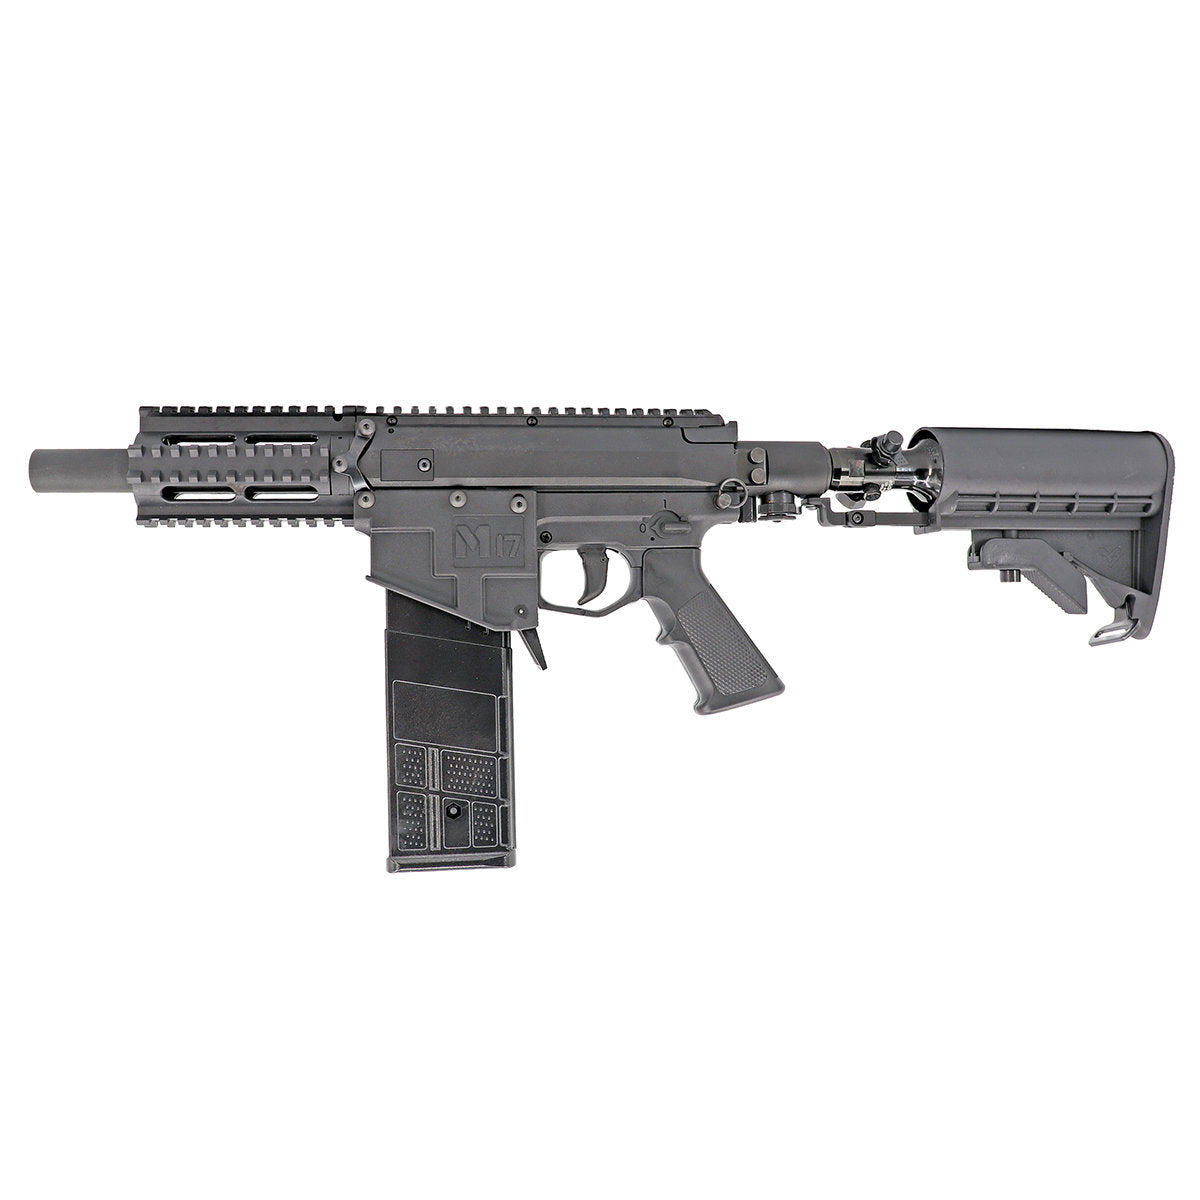 Milsig M17 CQC A2 (2019 Version)